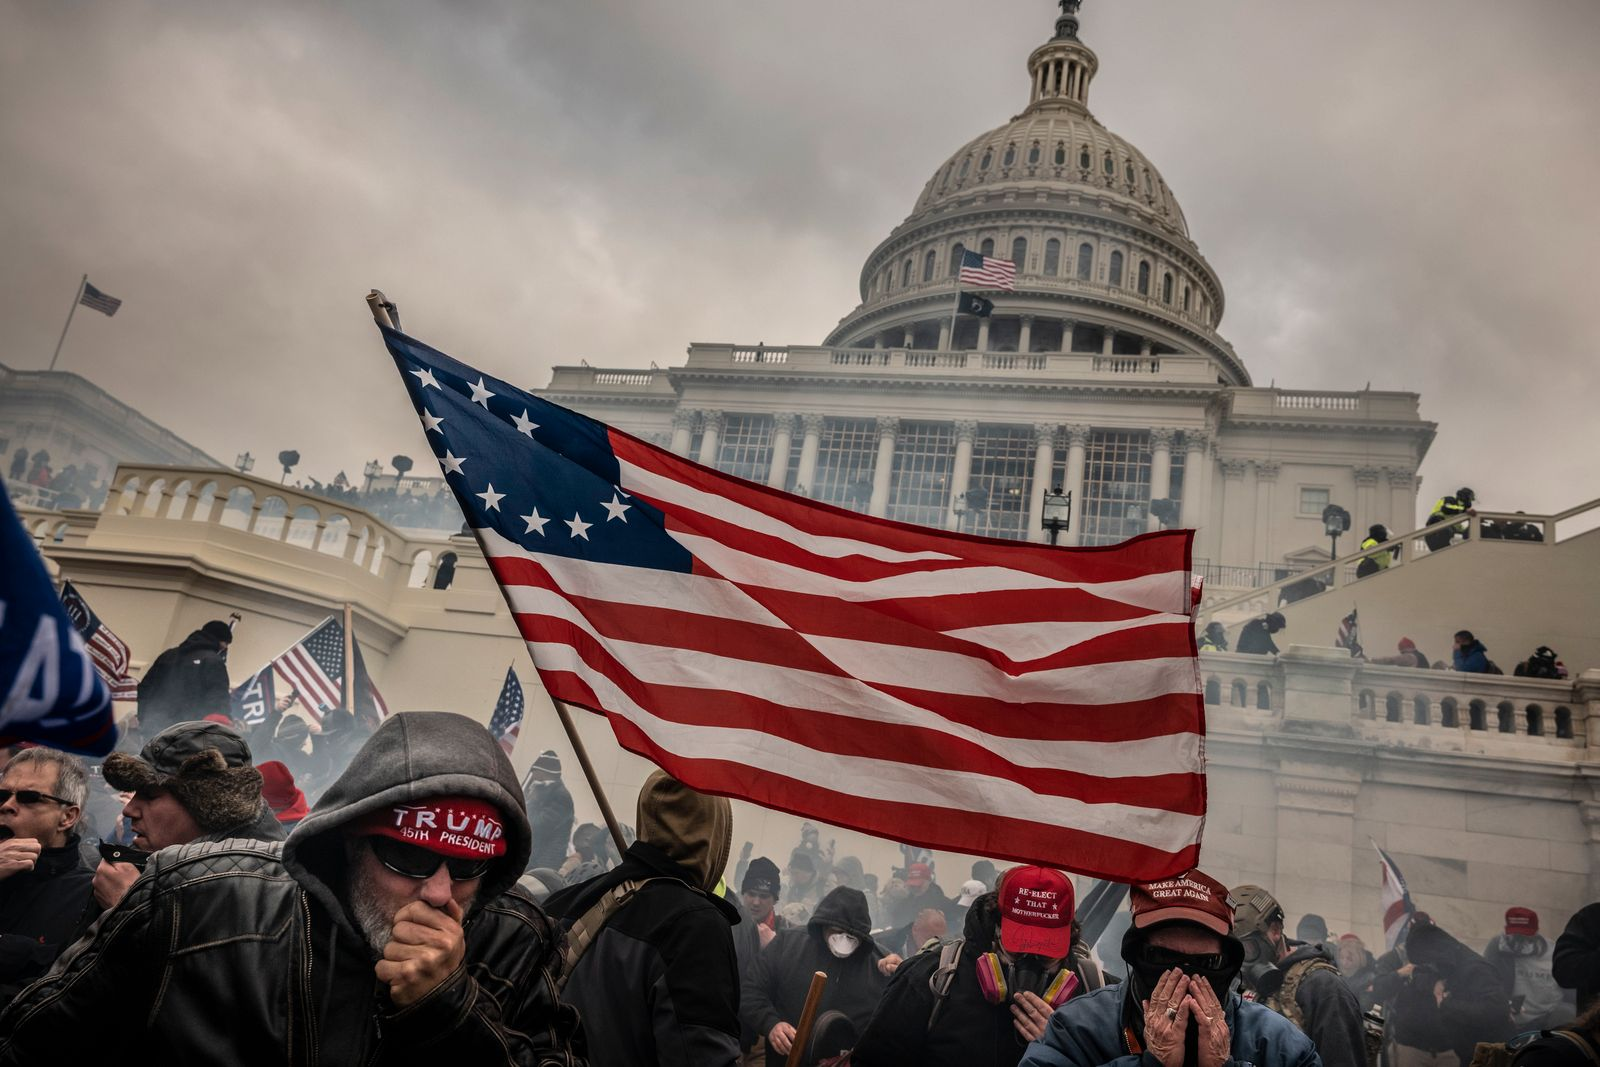 Pro-Trump Rally in Washington DC on Day of the Electoral College Count